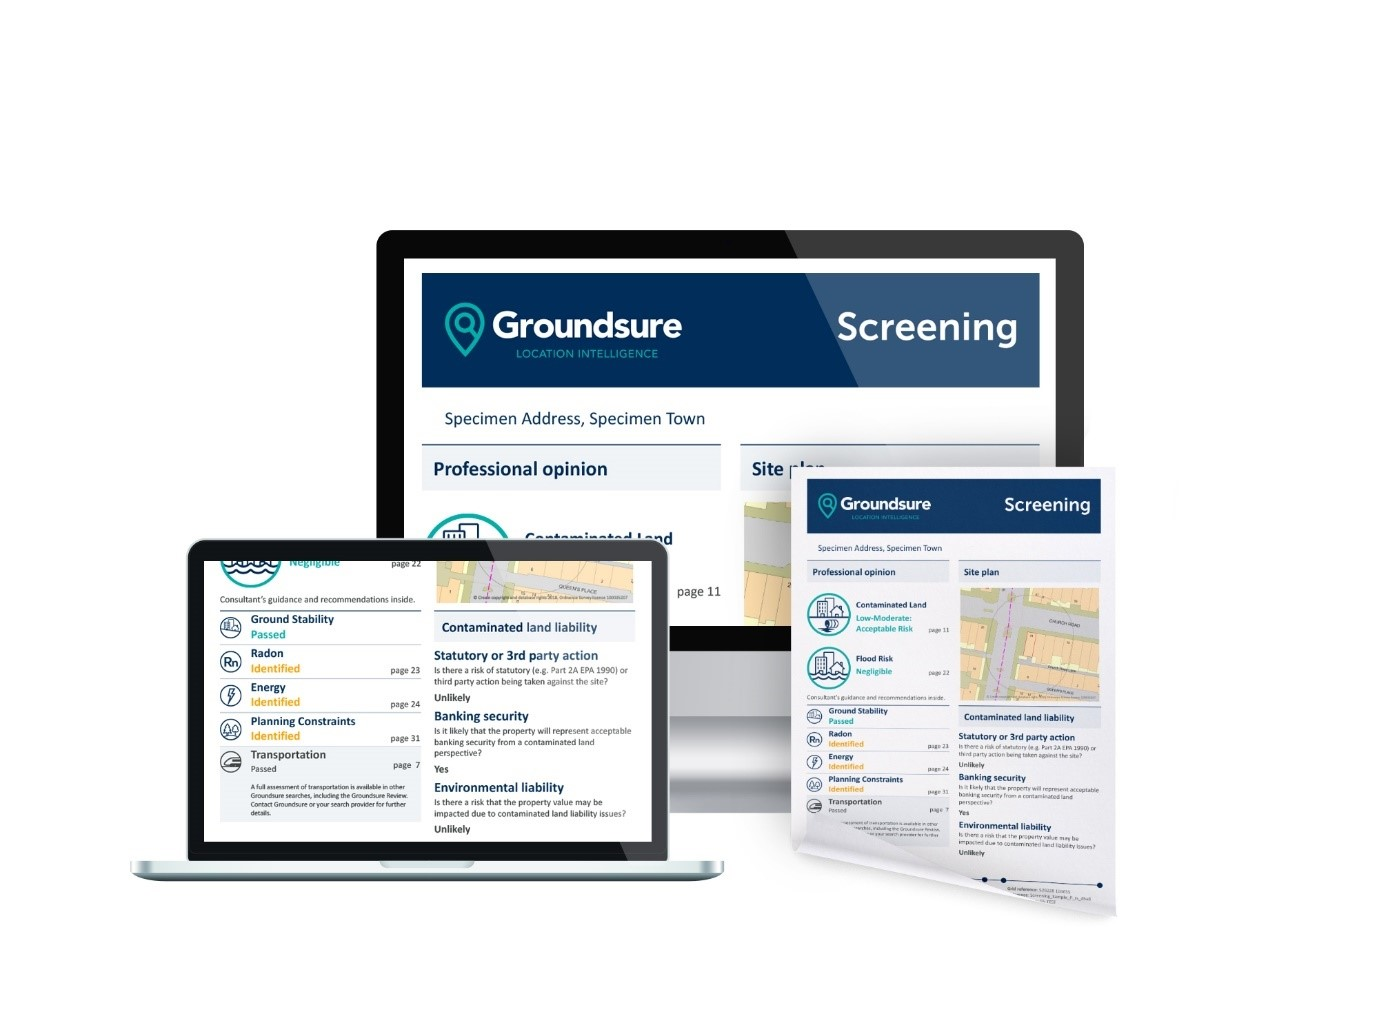 Groundsure Commercial Screening report layout